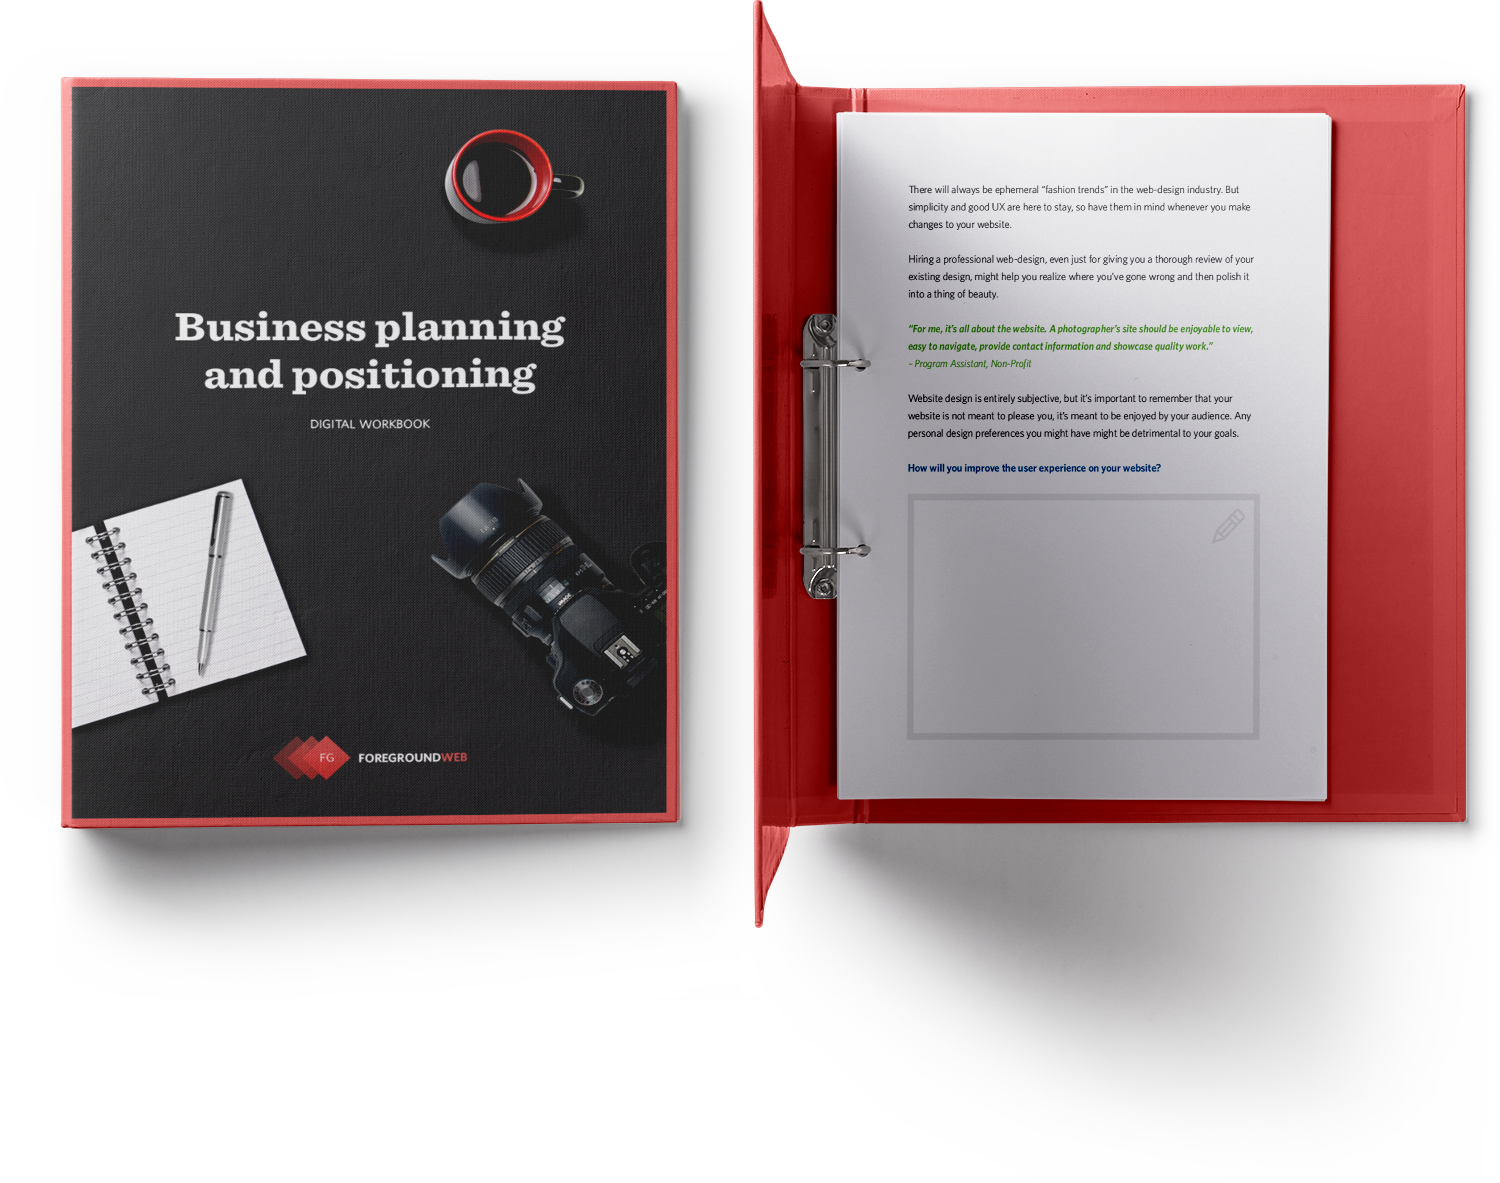 Business planning and positioning for photographers - Guide preview in a binder